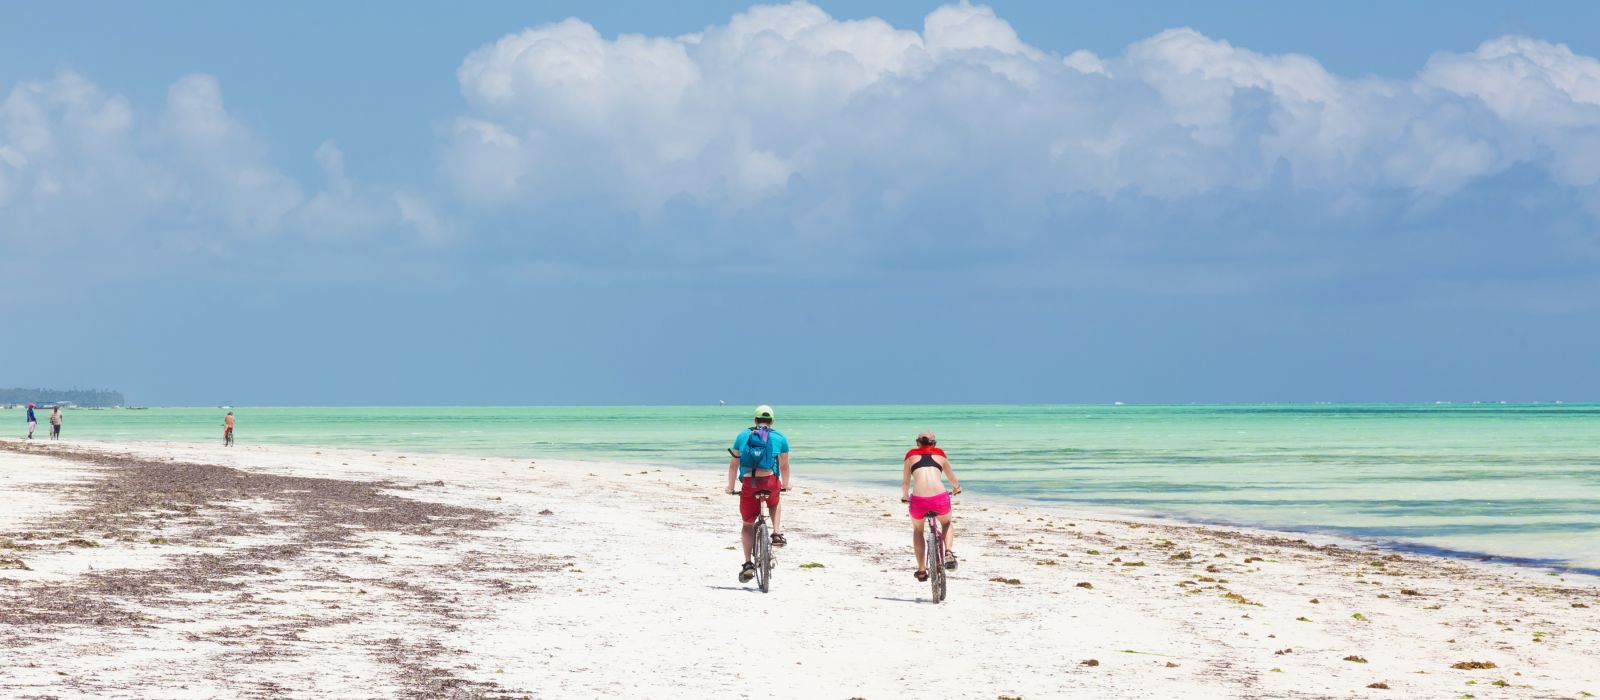 Tourist couple cycling down picture perfect white sand tropical beach of Paje village, Zanzibar, Tanzania, Africa